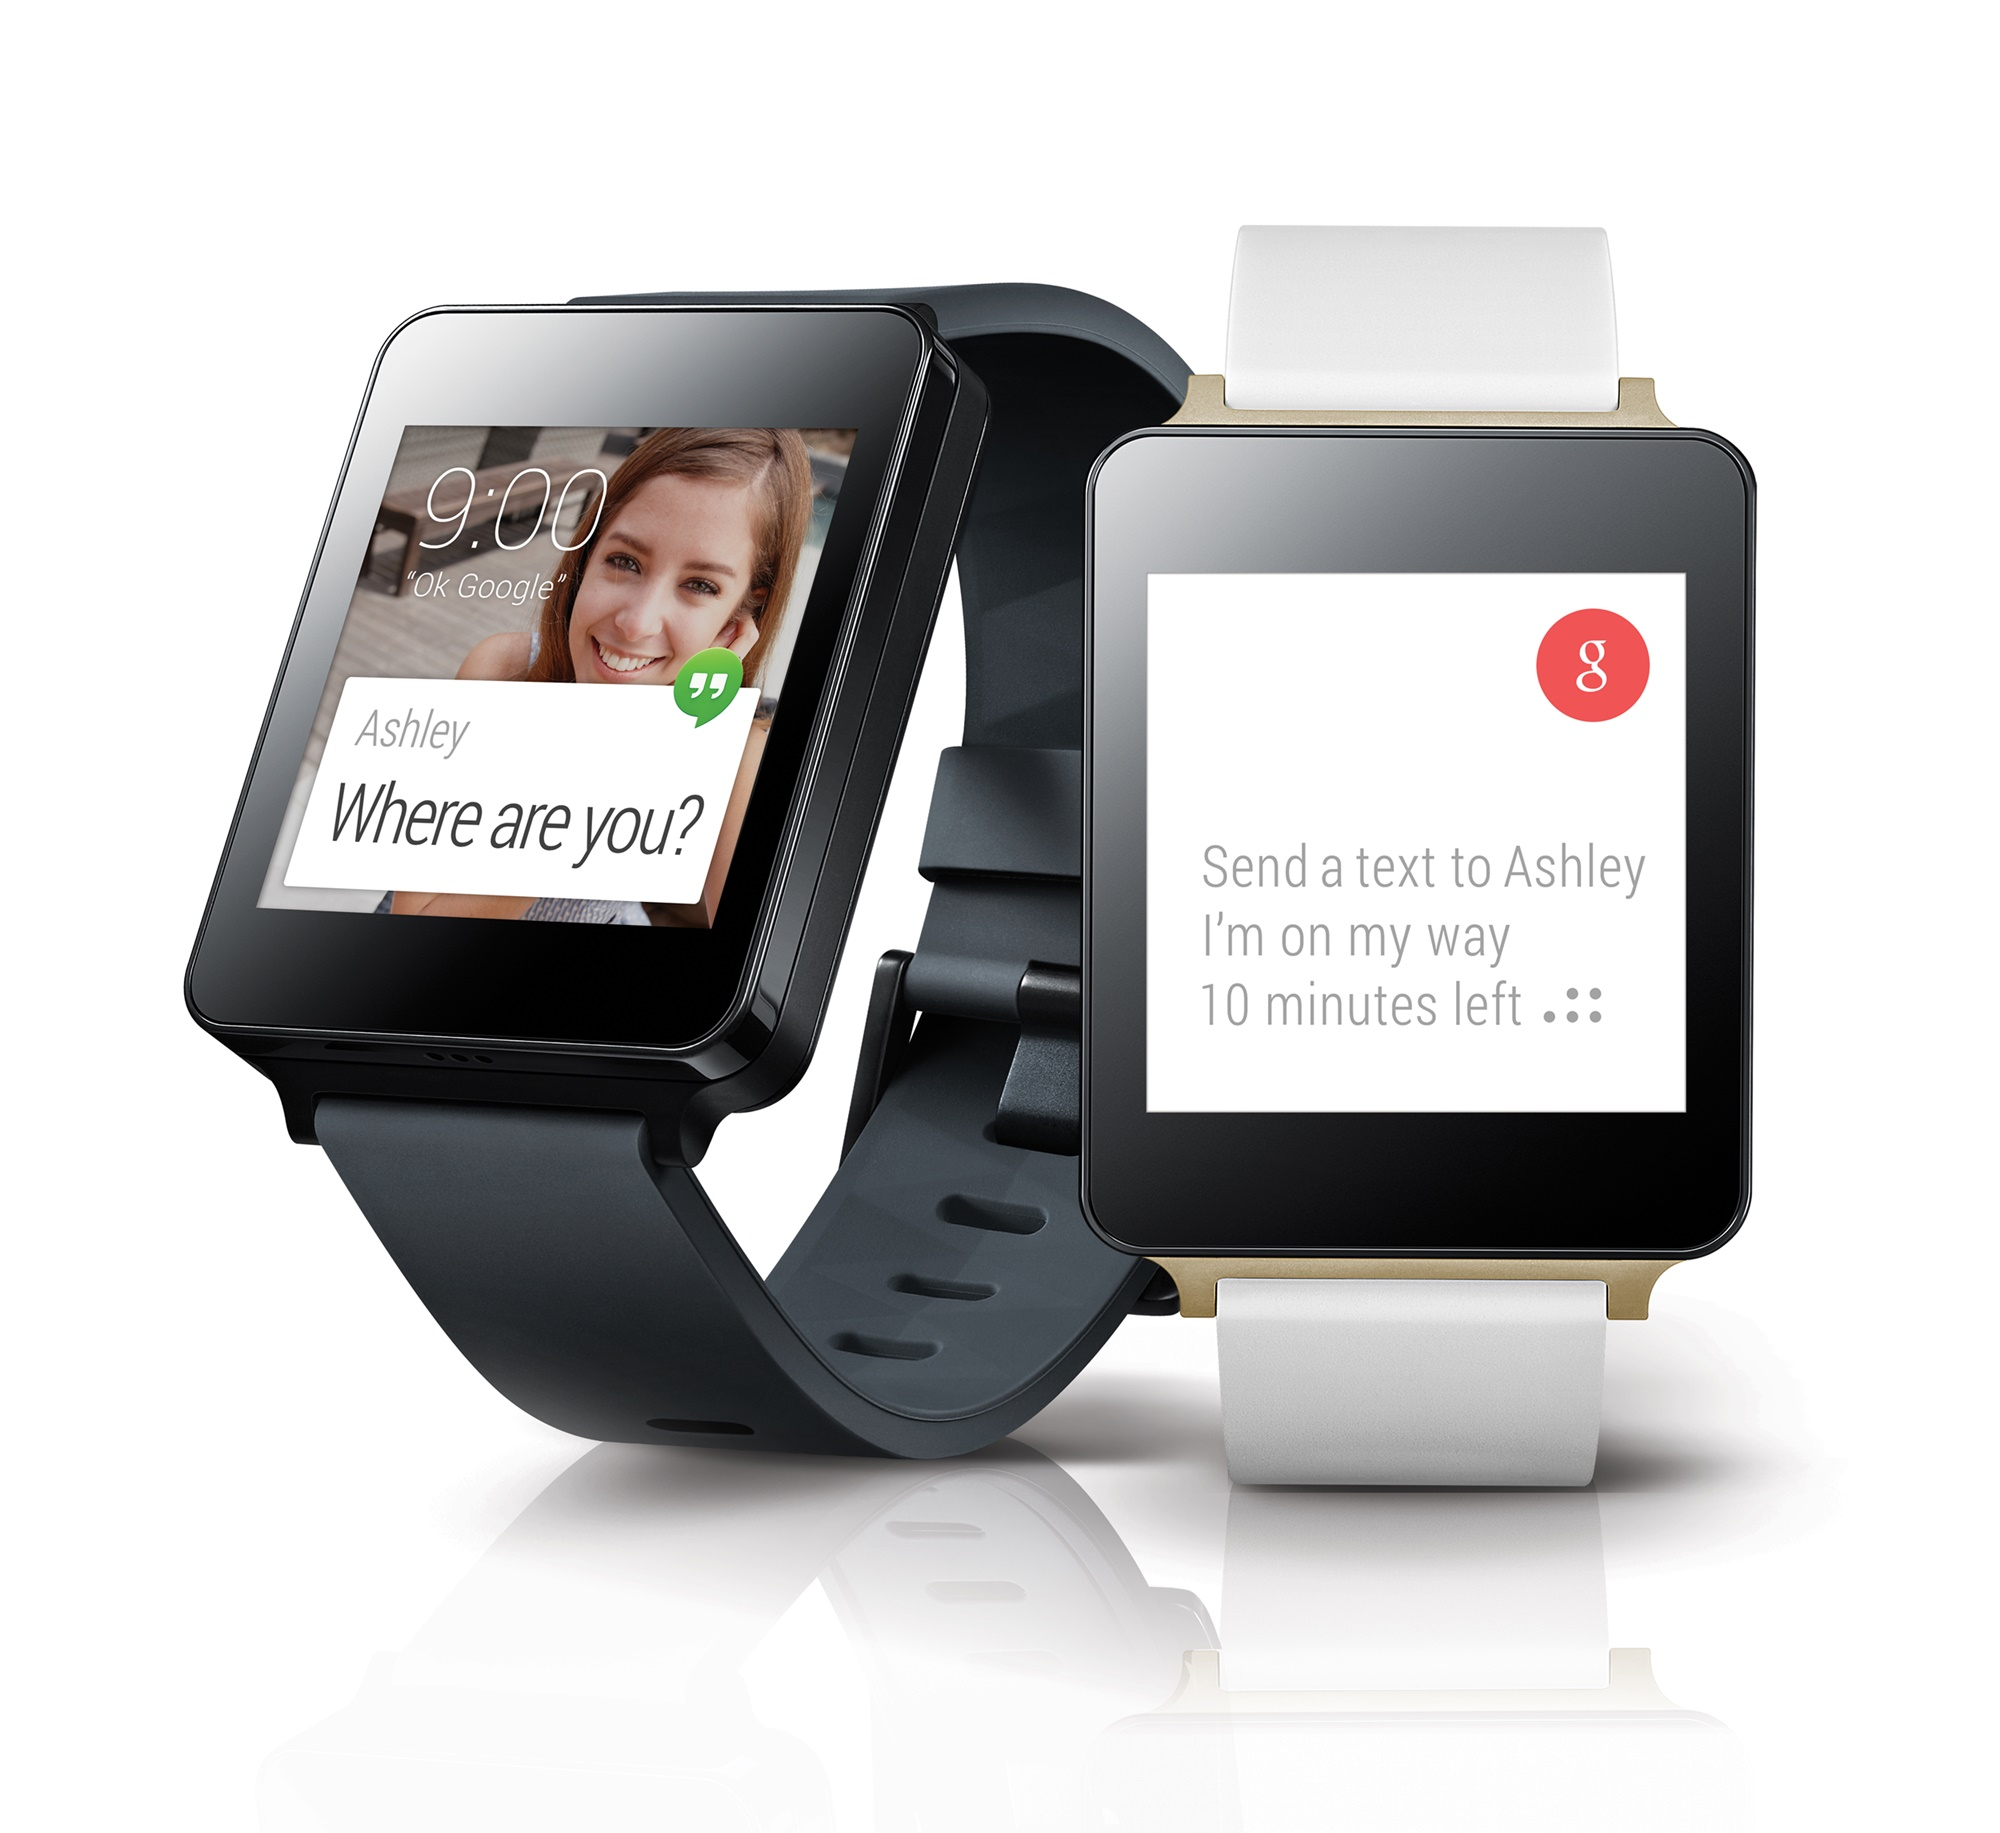 LG Electronics announced that the LG G Watch is now available for purchase from the Google Play Store. (image credit: LG Electronics)